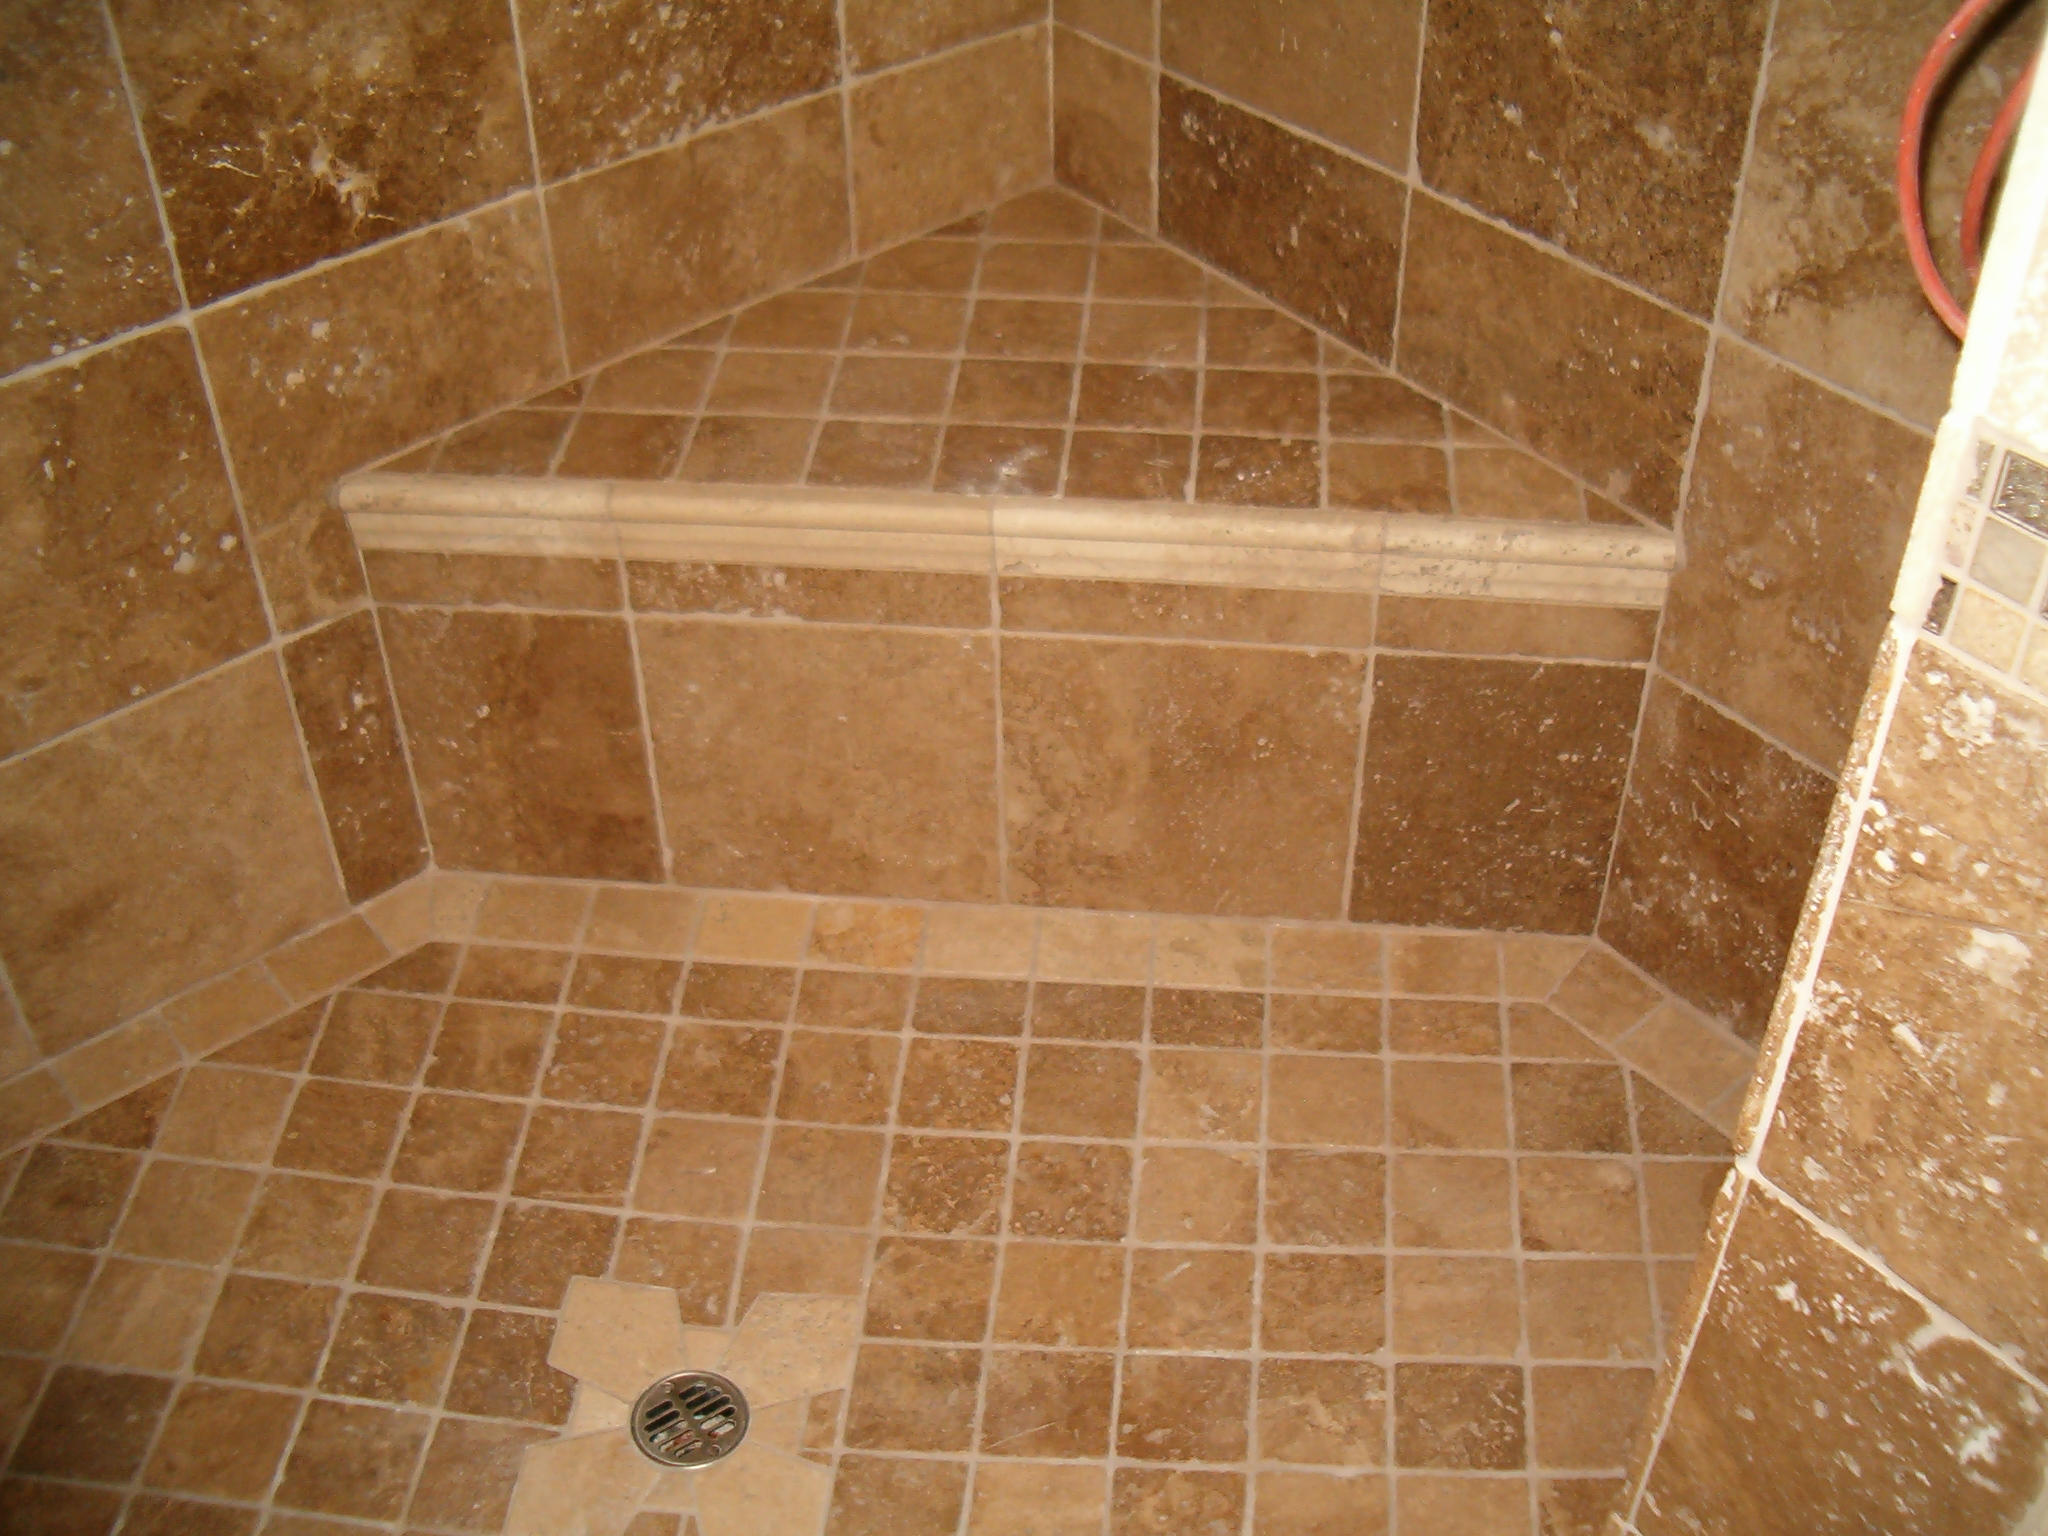 Shower anatomy for Bathroom tile designs photos